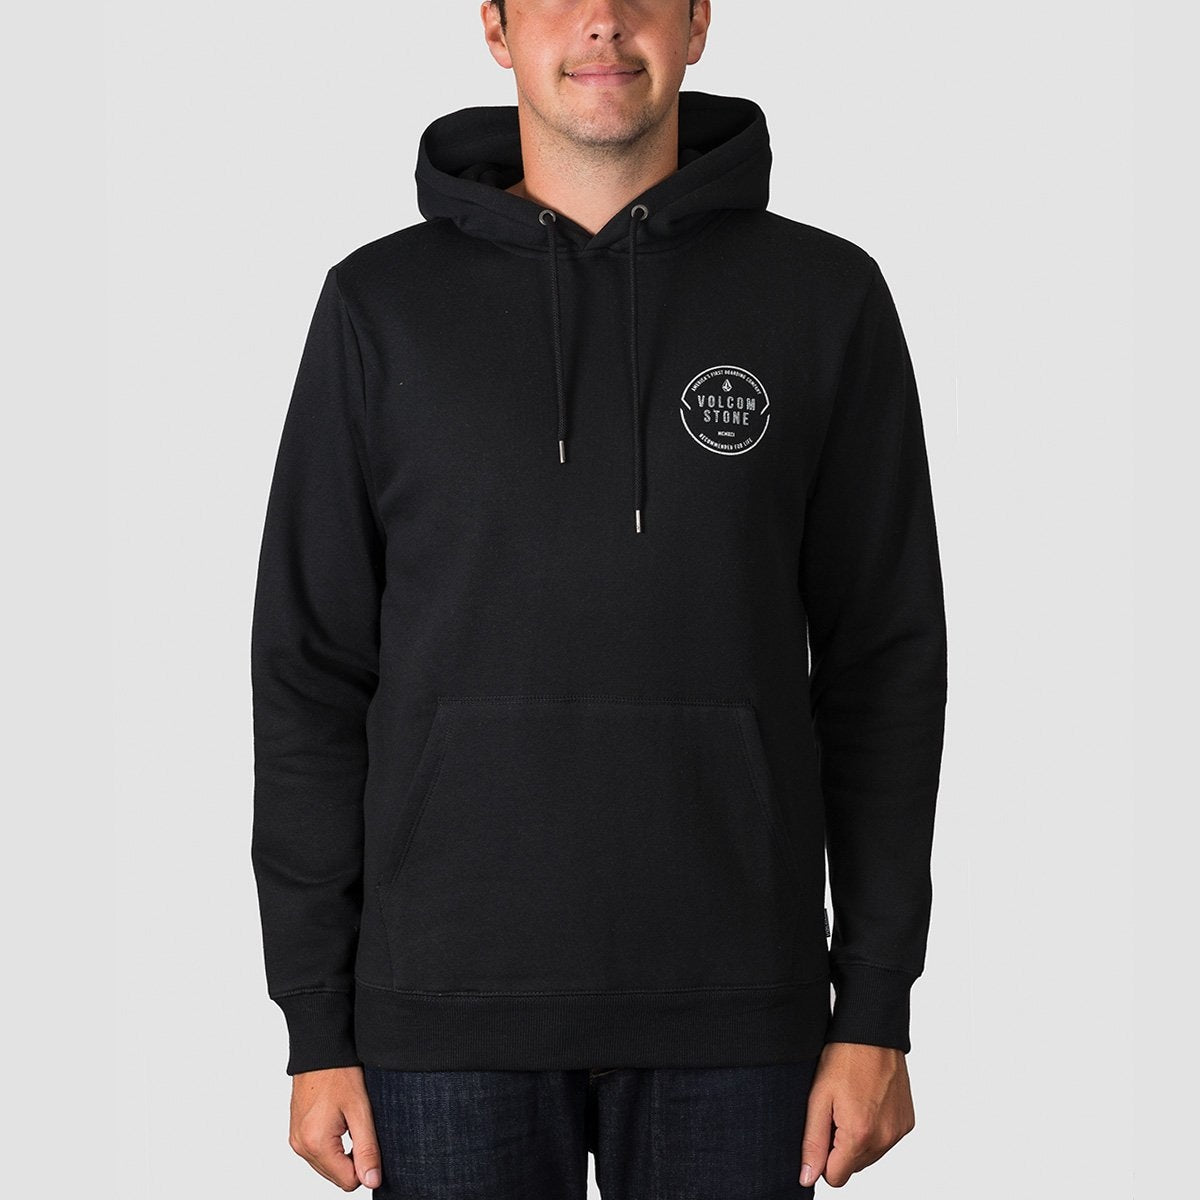 Volcom General Stone Pullover Hood Black - Clothing